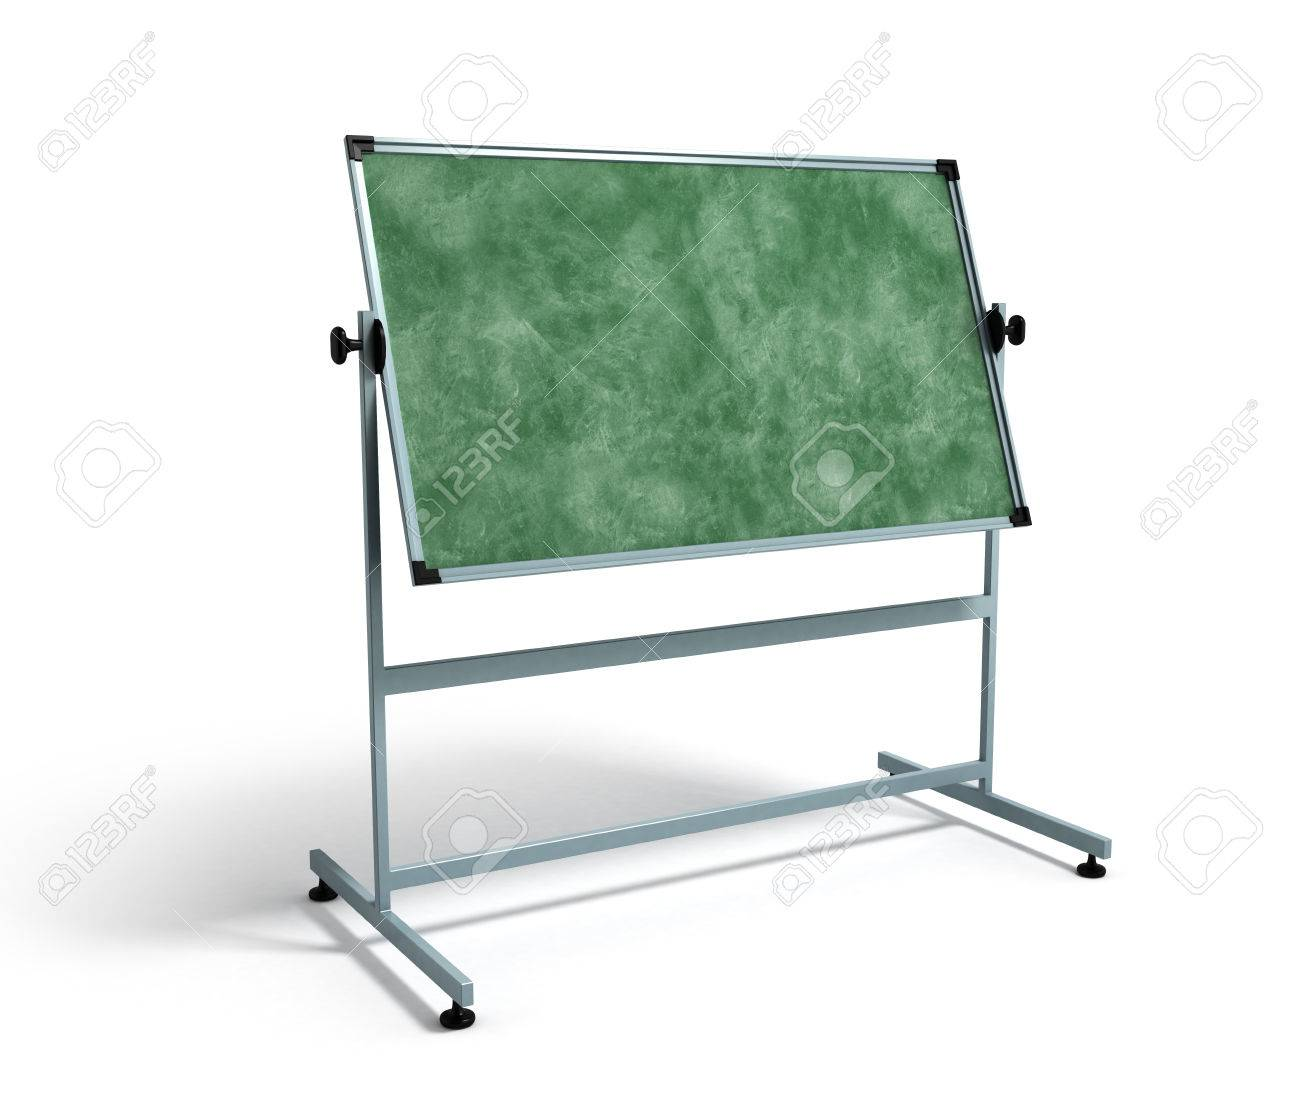 Green Chalkboard With Metal Frame 3d Render On White Stock Photo ...